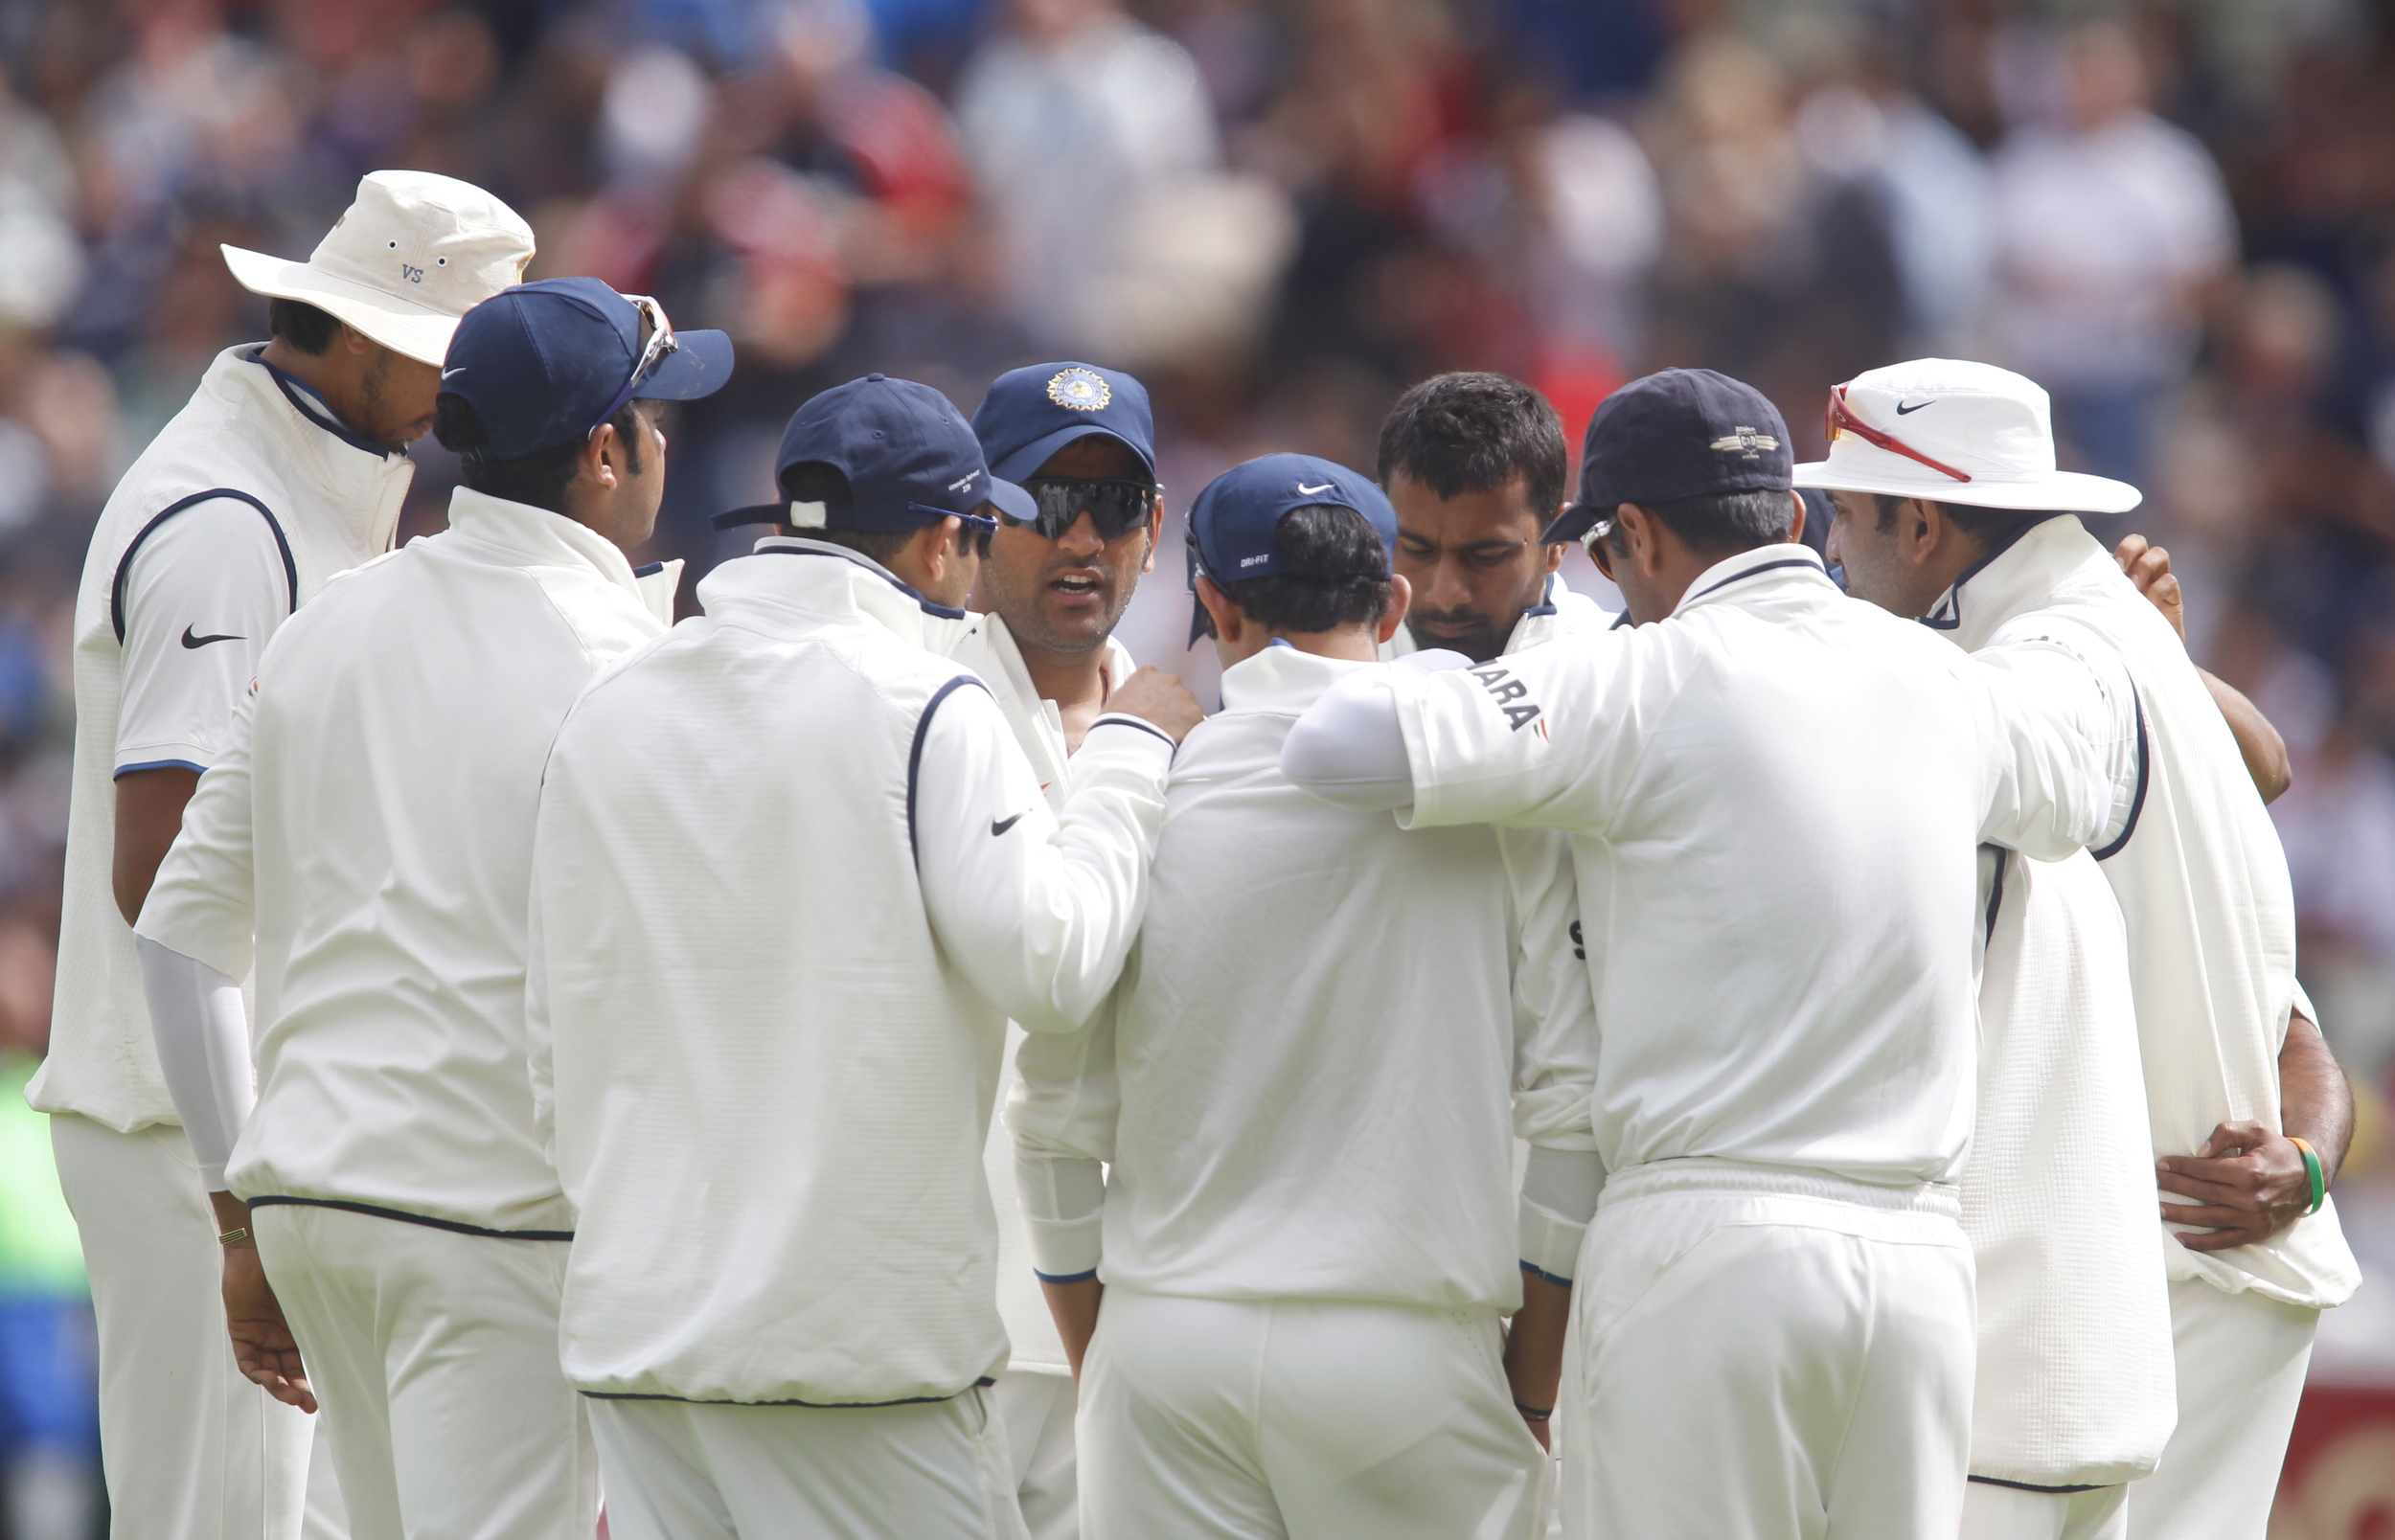 The Indian Test team gather in a huddle during a match against England at Edgbaston. Paddy Upton, during his time as Gary Kirsten's assistant coach, helped instil a unified philosophy within the Indian team.  Image supplied by Action Images / Andrew Boyers